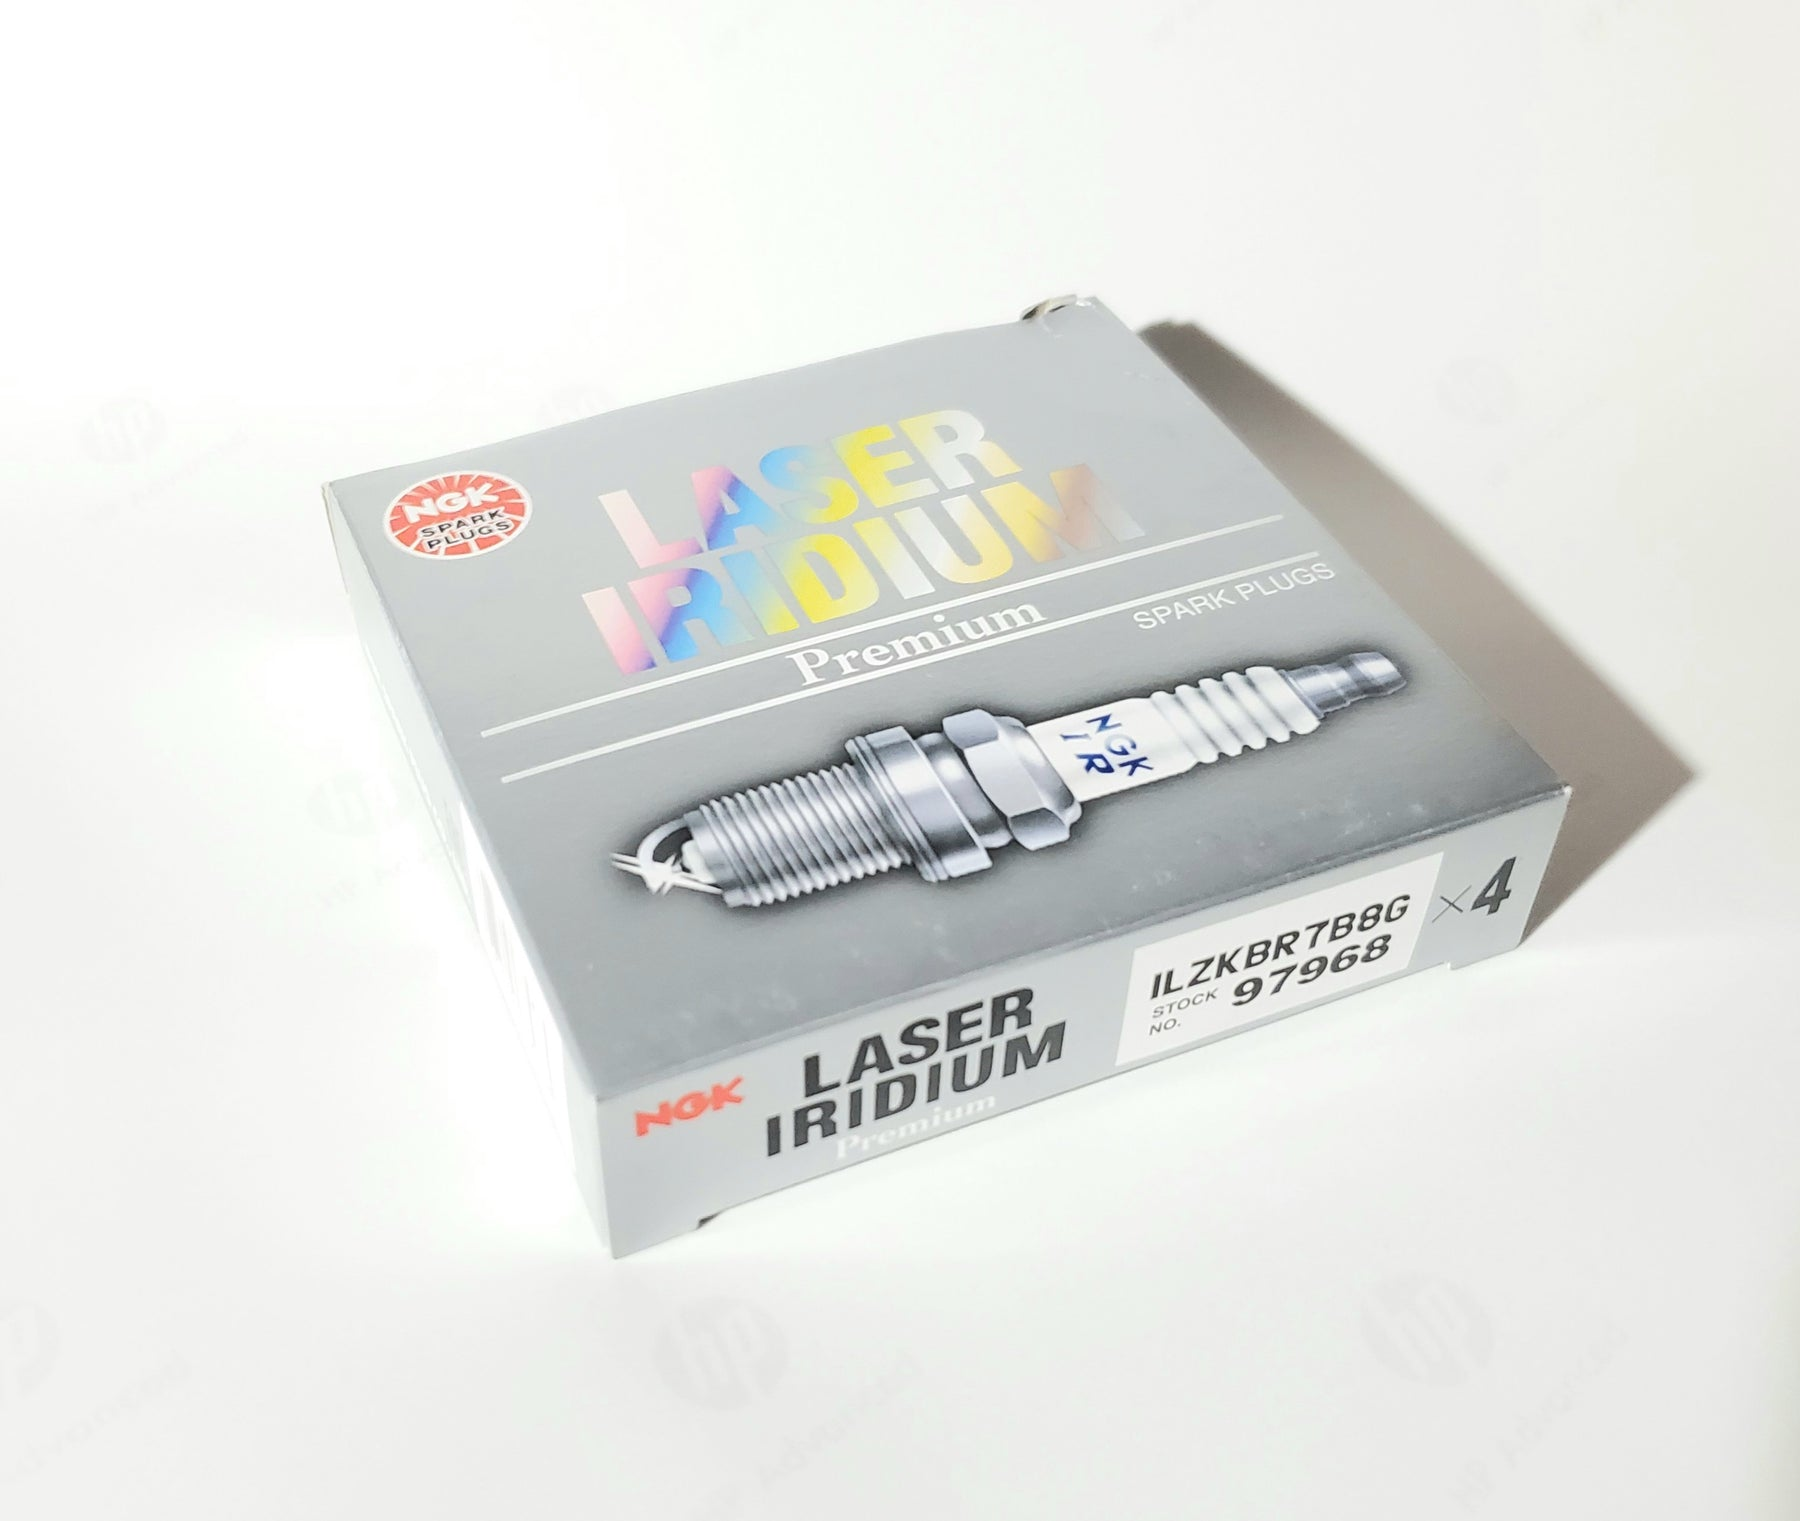 NGK 97968 Iridium Spark Plugs